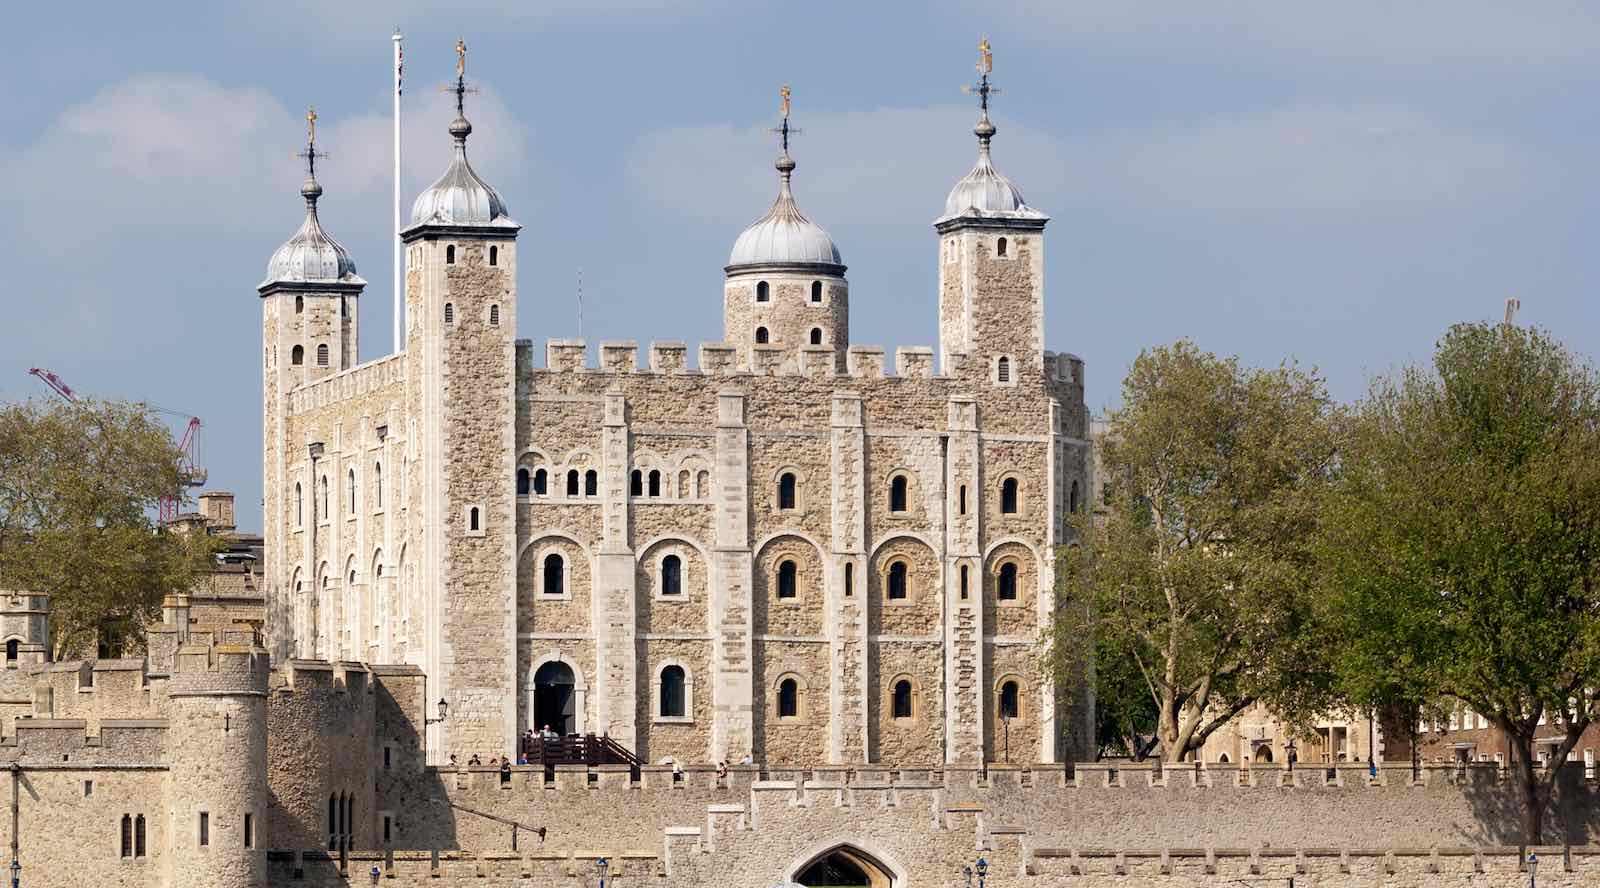 The Princes in the Tower is a longstanding mystery within British royalty. But will we ever find their true killers? It depends if the Queen lets them.